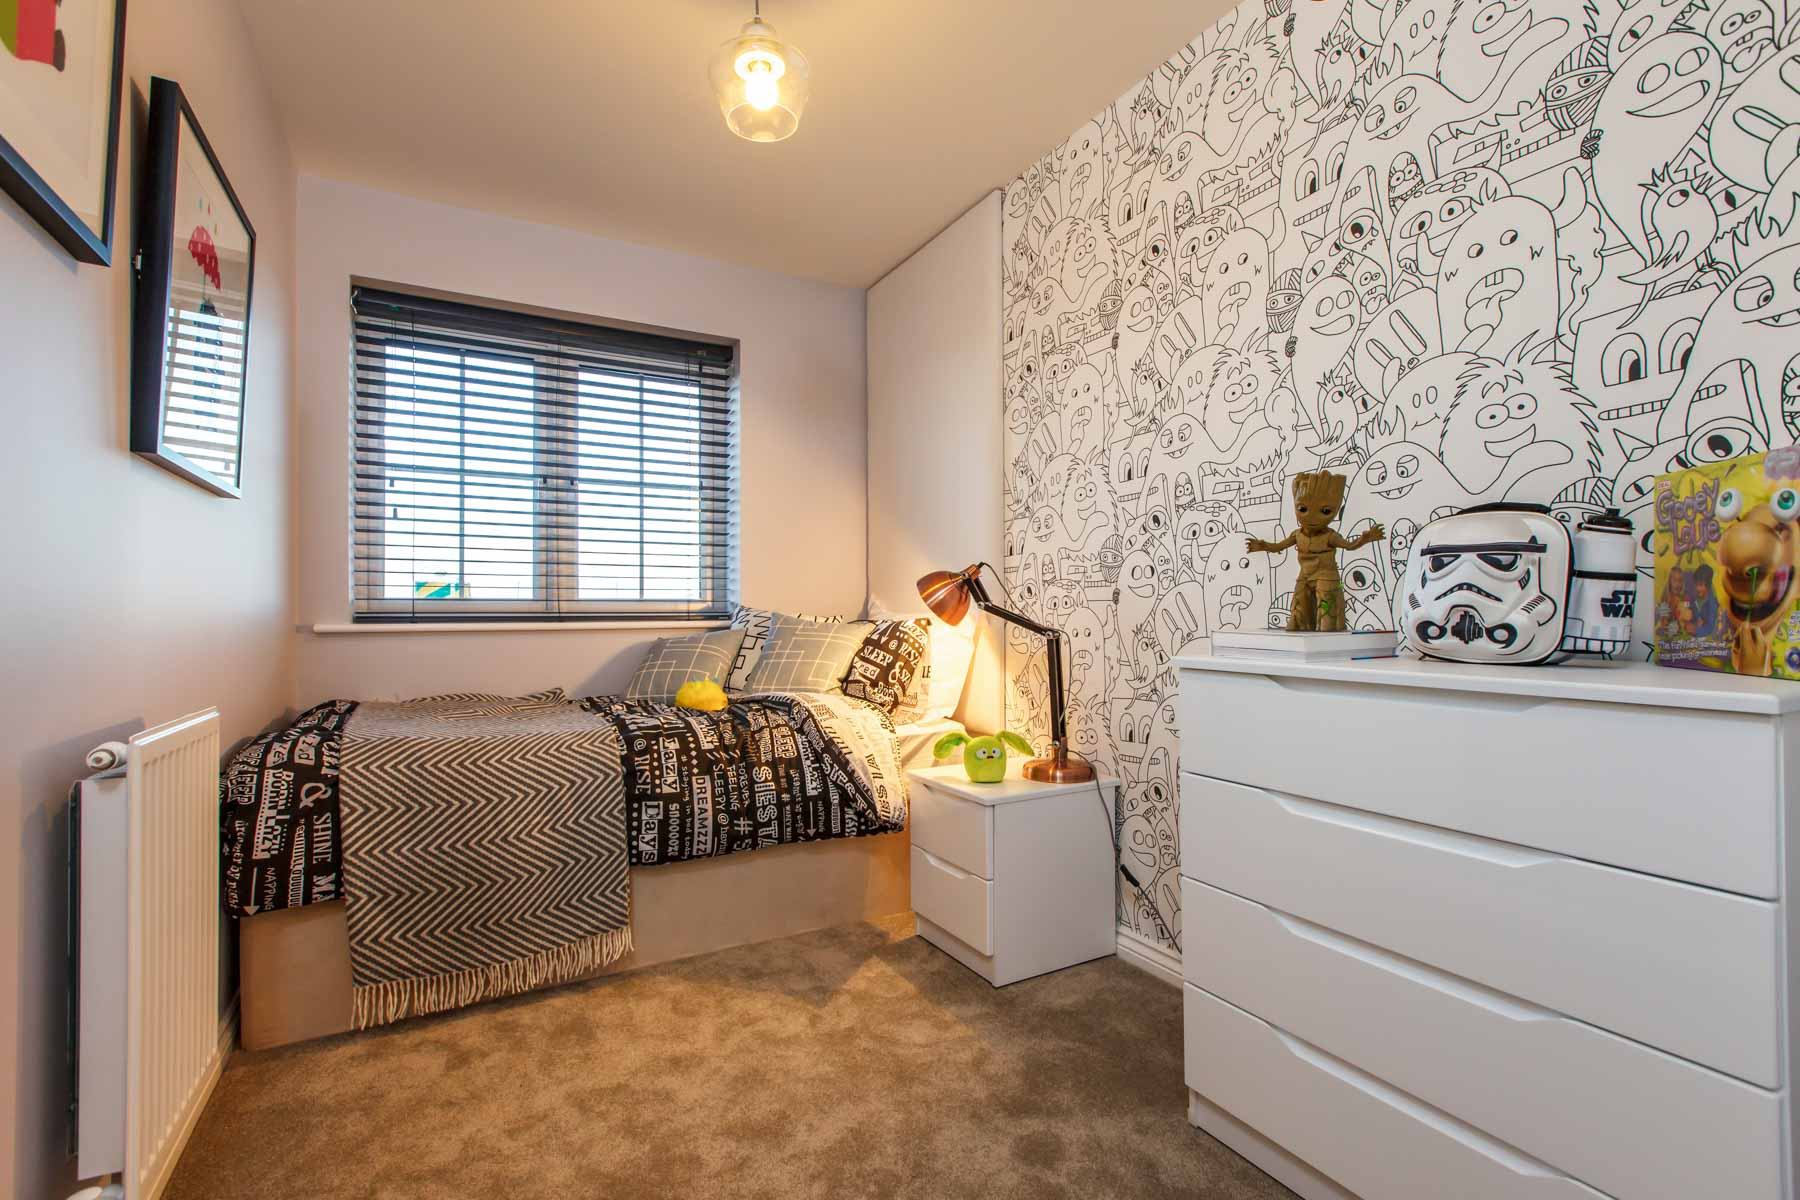 Hamford Park - New homes in Walton-on-the-Naze | Taylor Wimpey